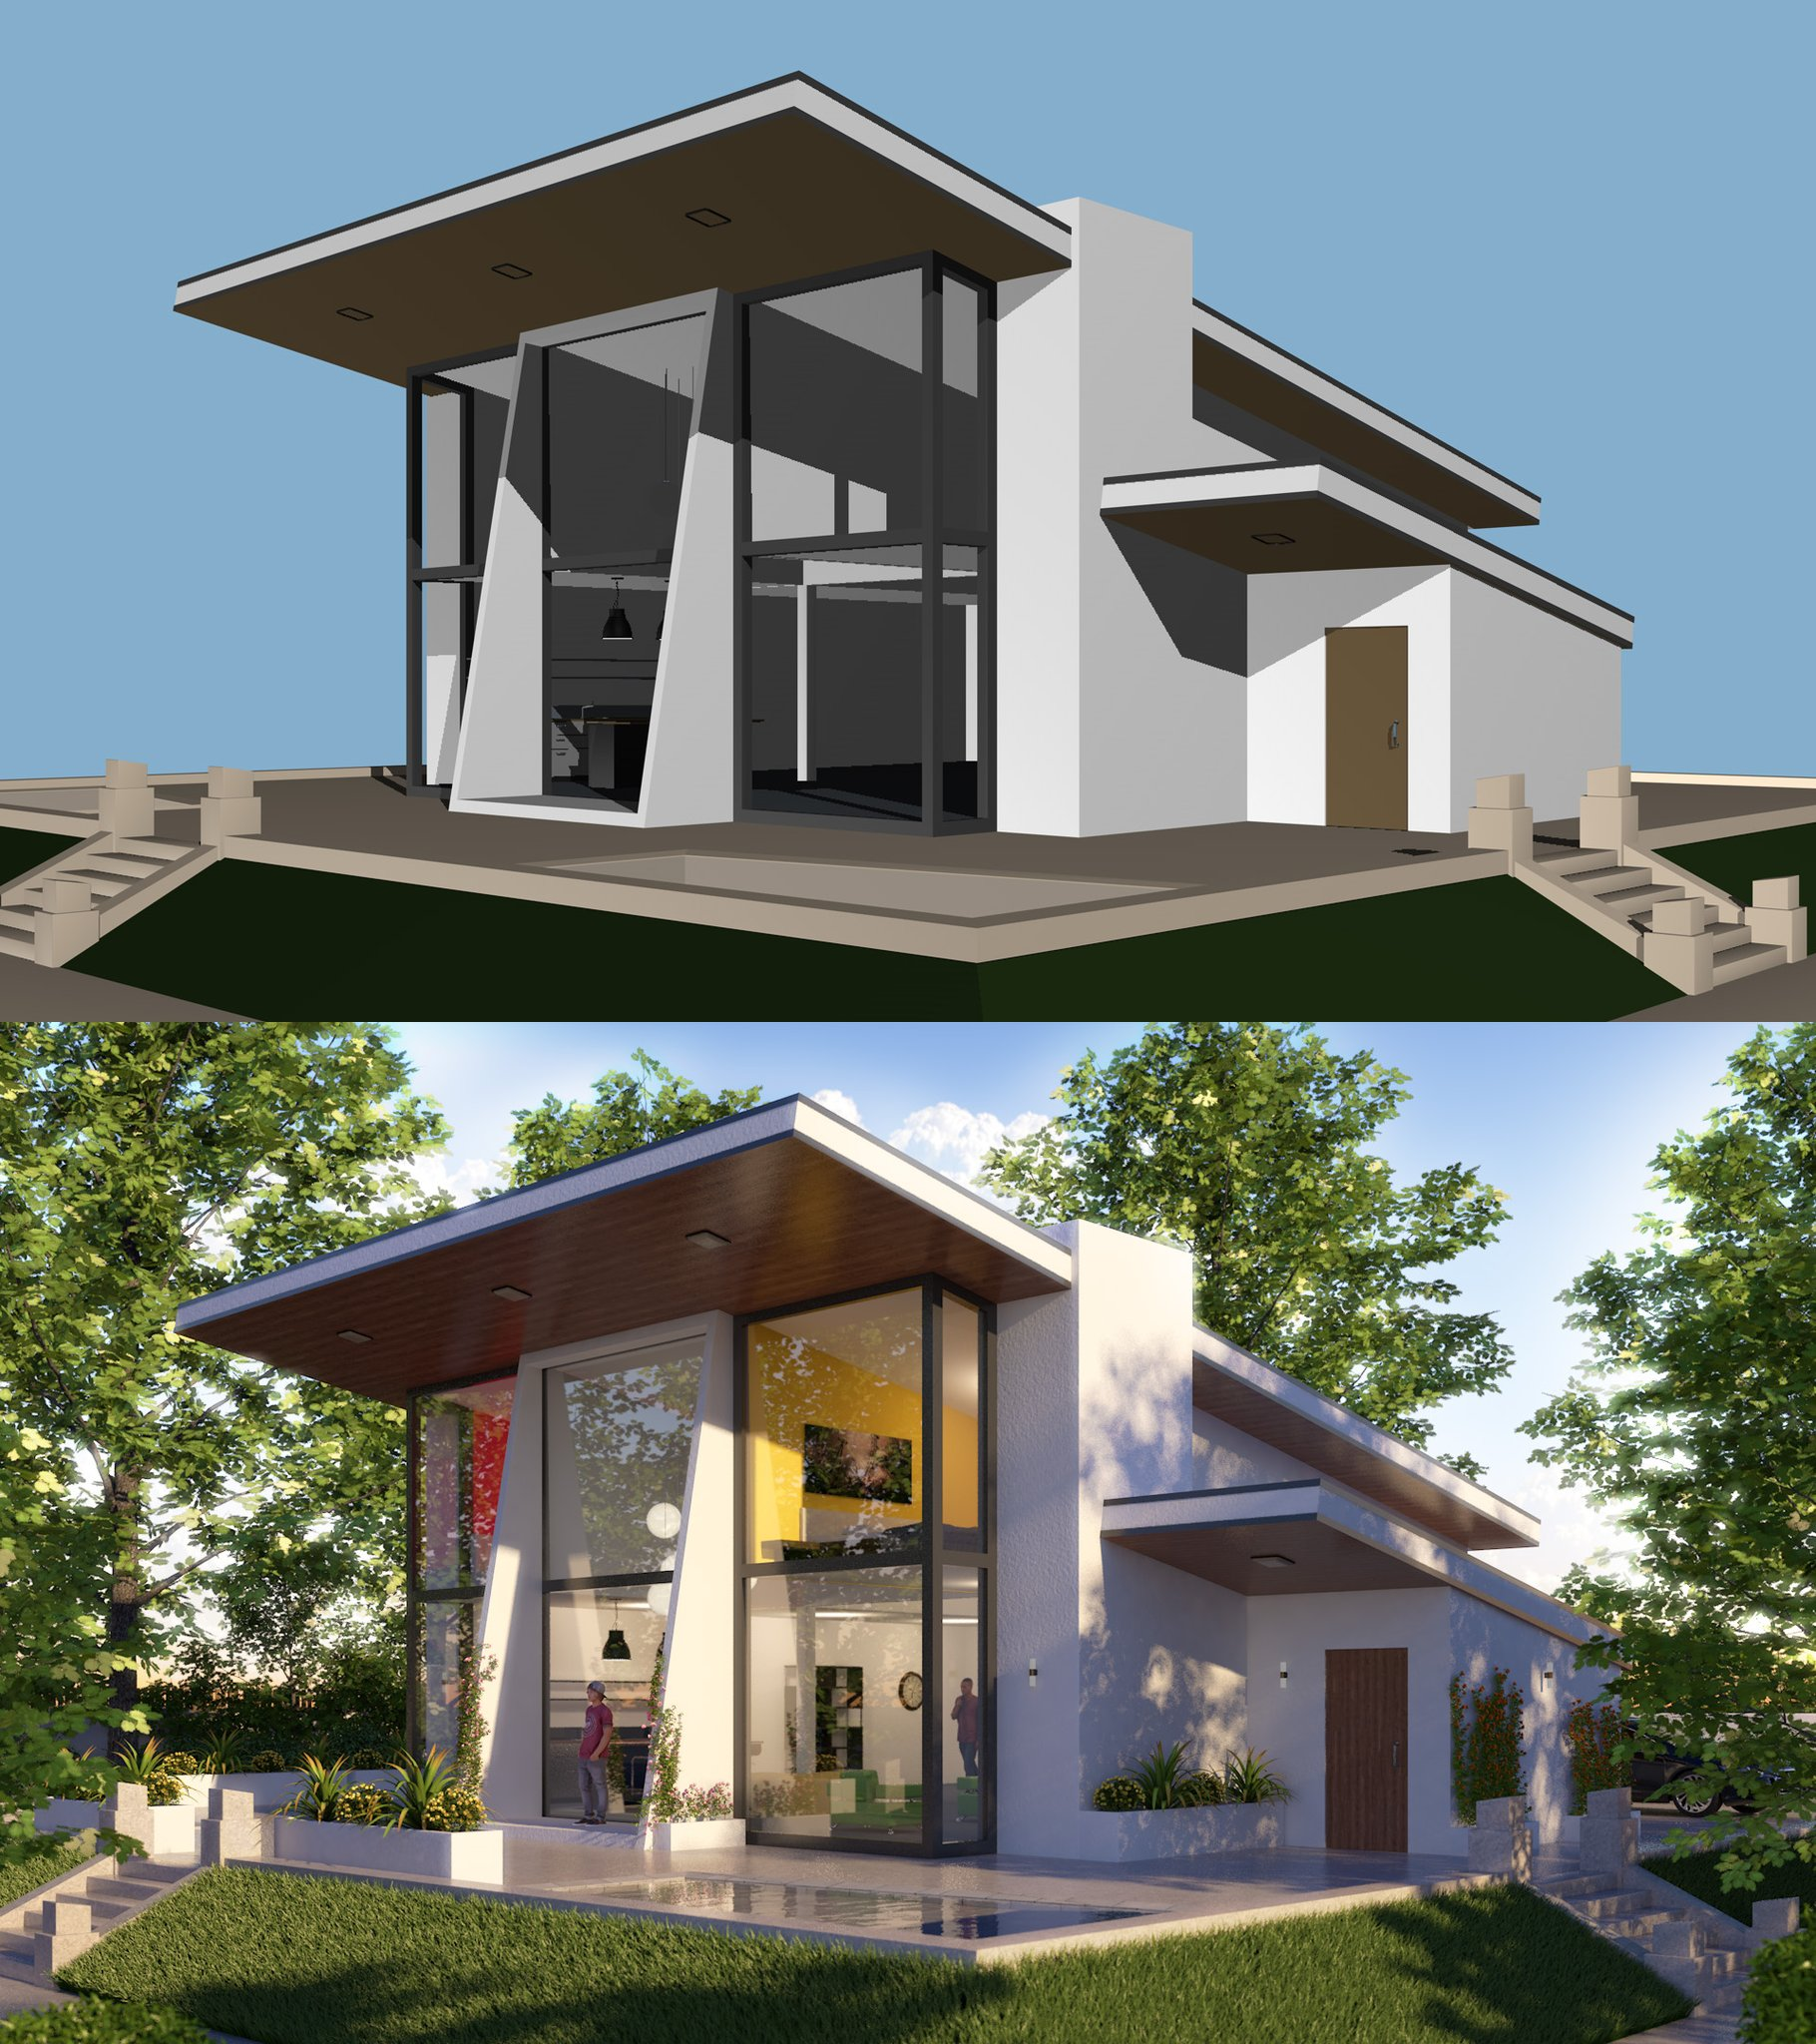 Cinema 4D R19 - Modern Exterior Architecture - Video Tutorial